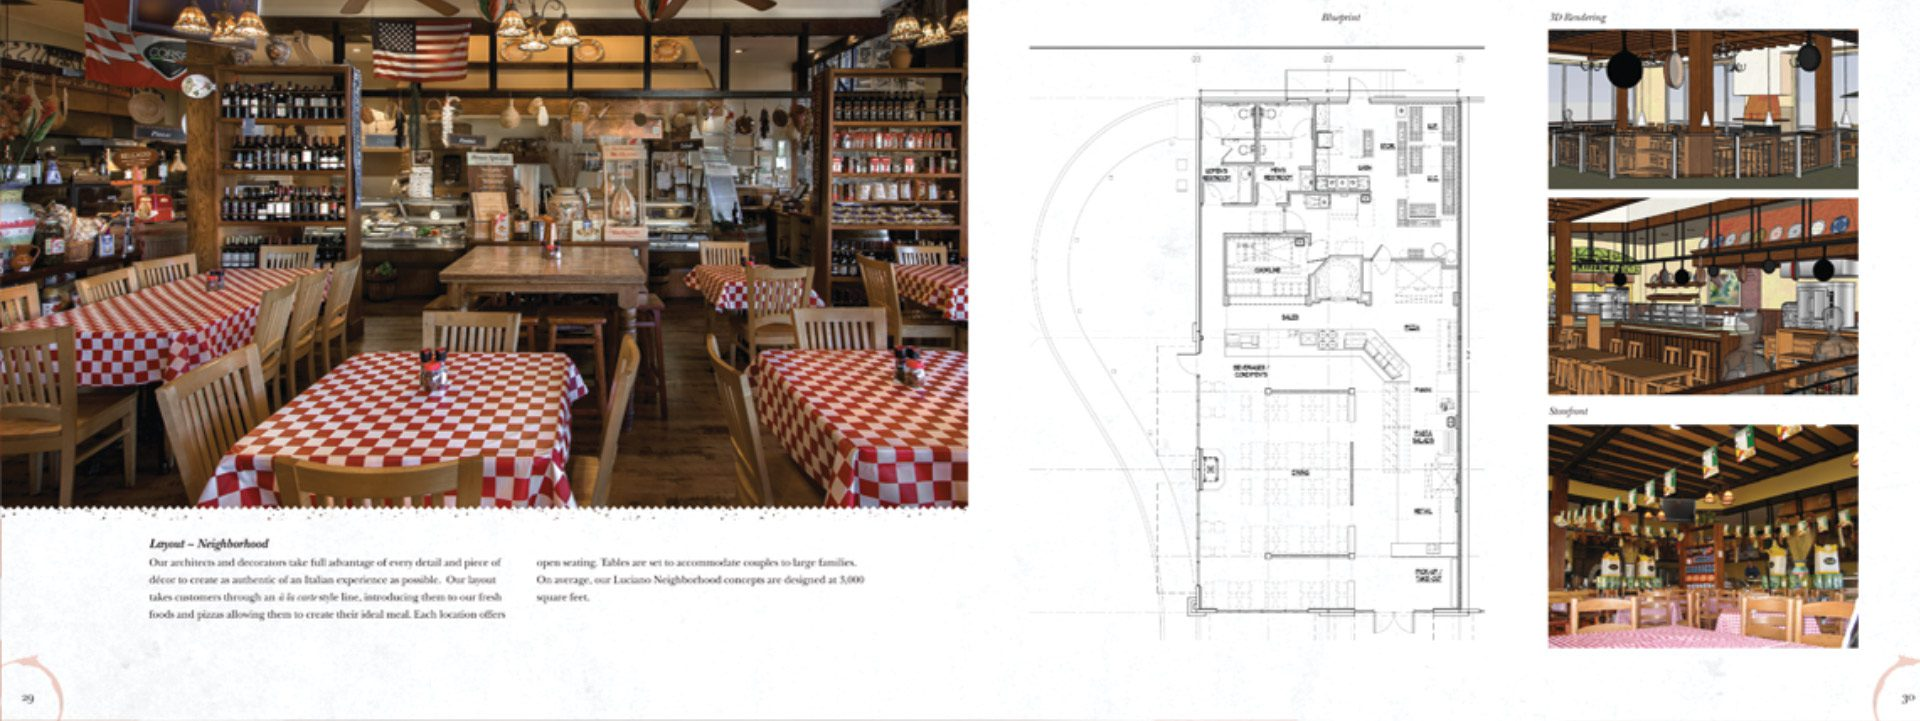 designed to show restaurant pictures